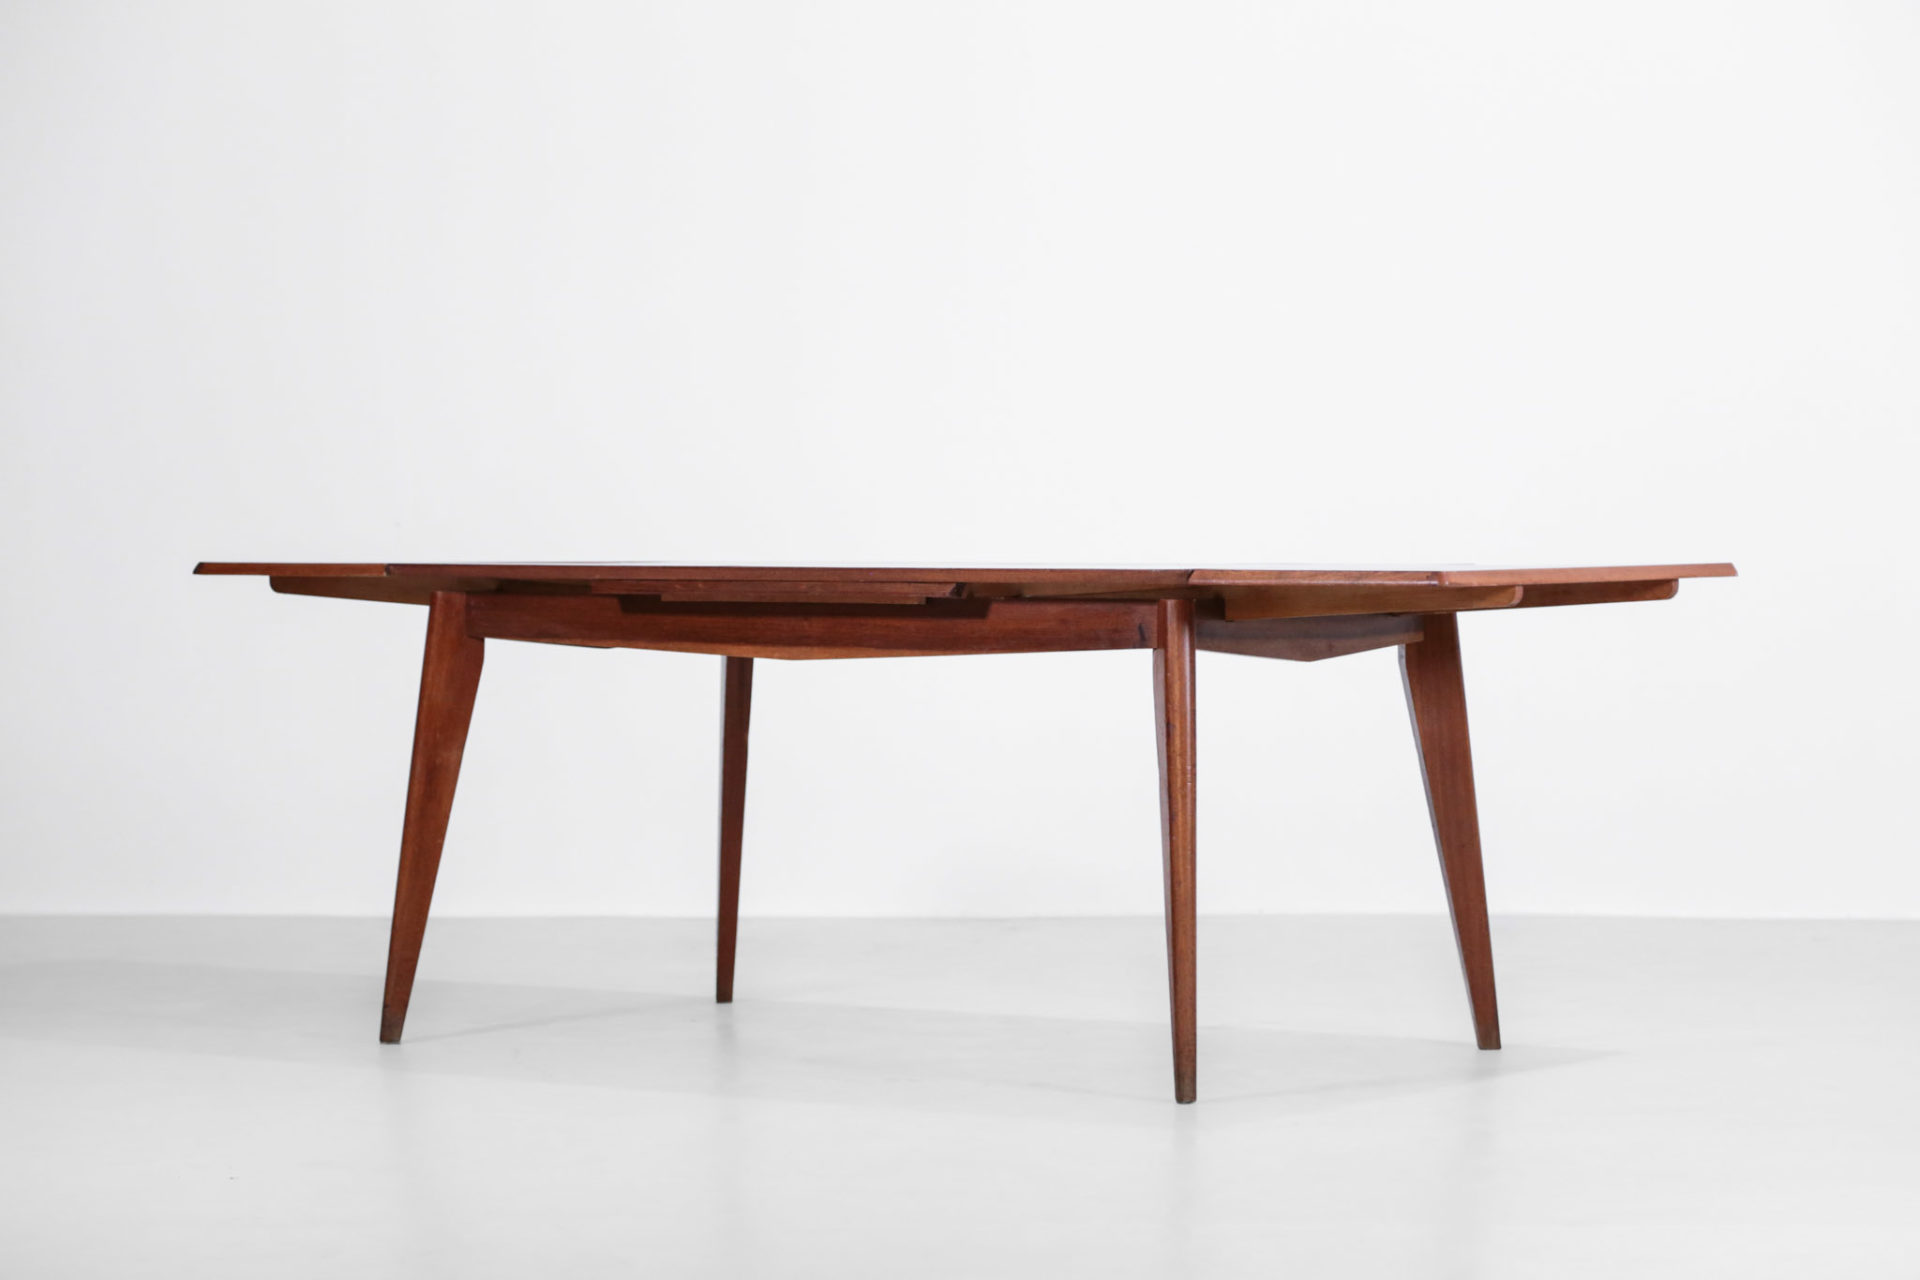 table à manger Francaise en chene massif moderniste design33